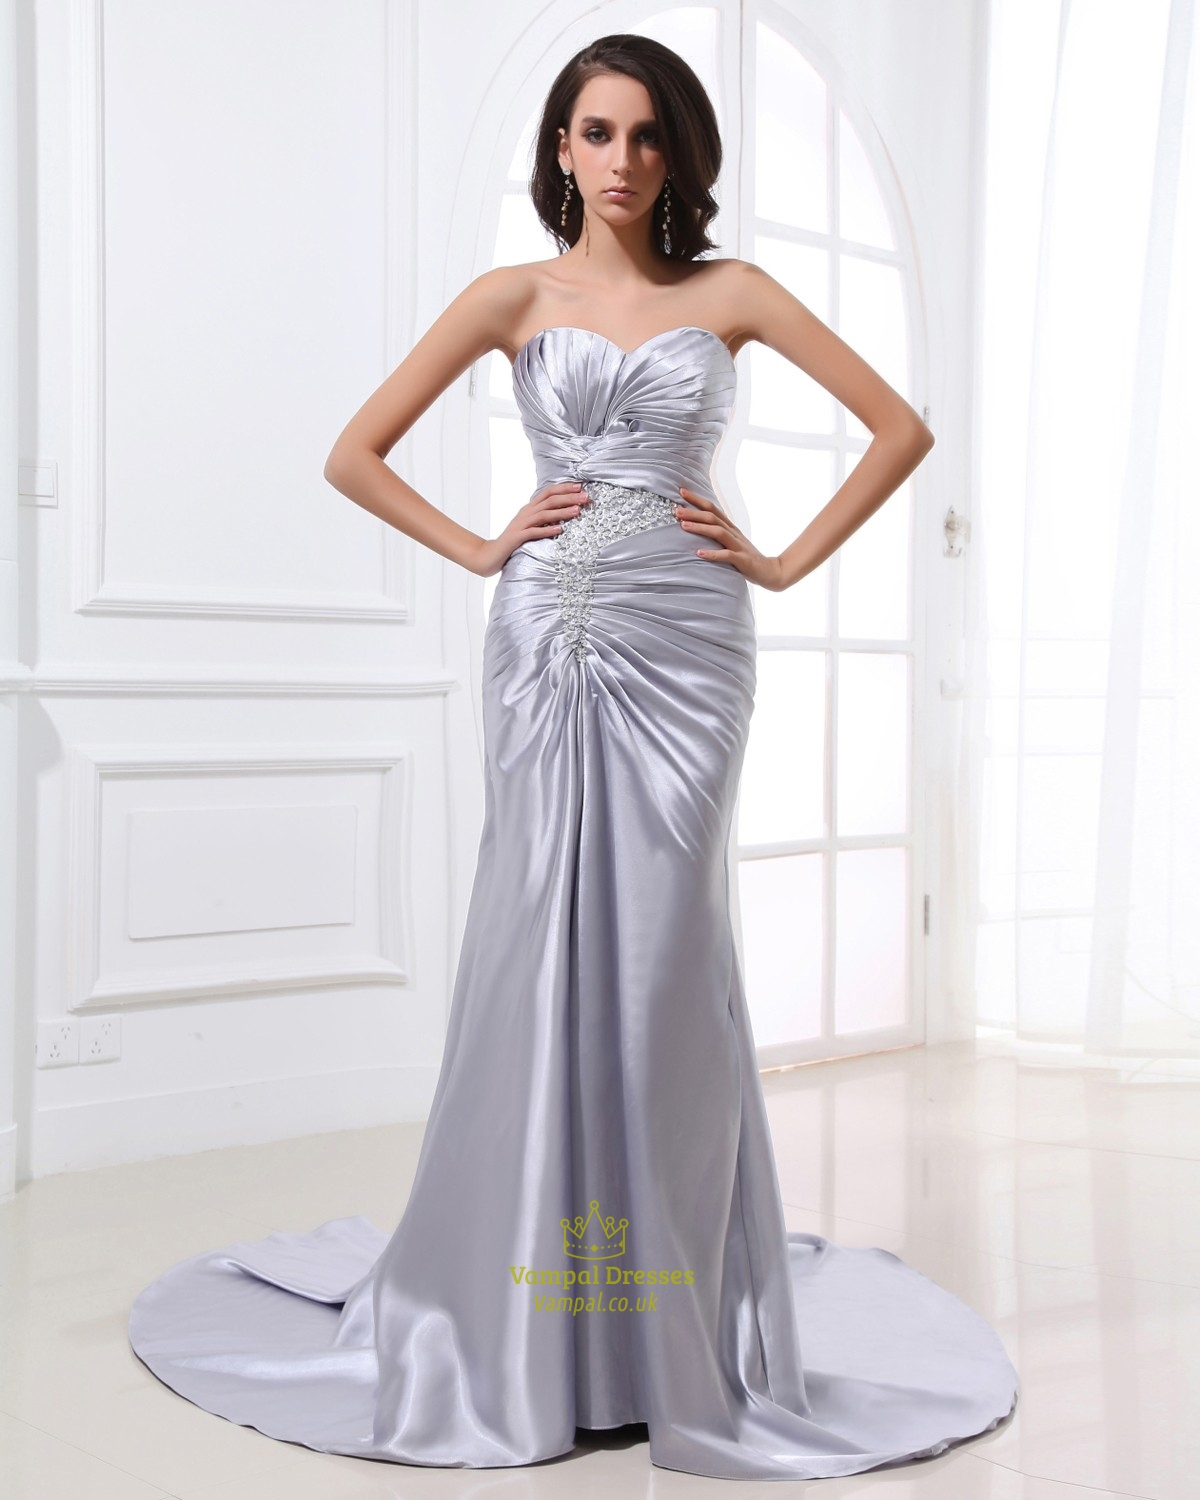 White And Silver Prom Dresses 2016,Silver Satin Prom Dress ...